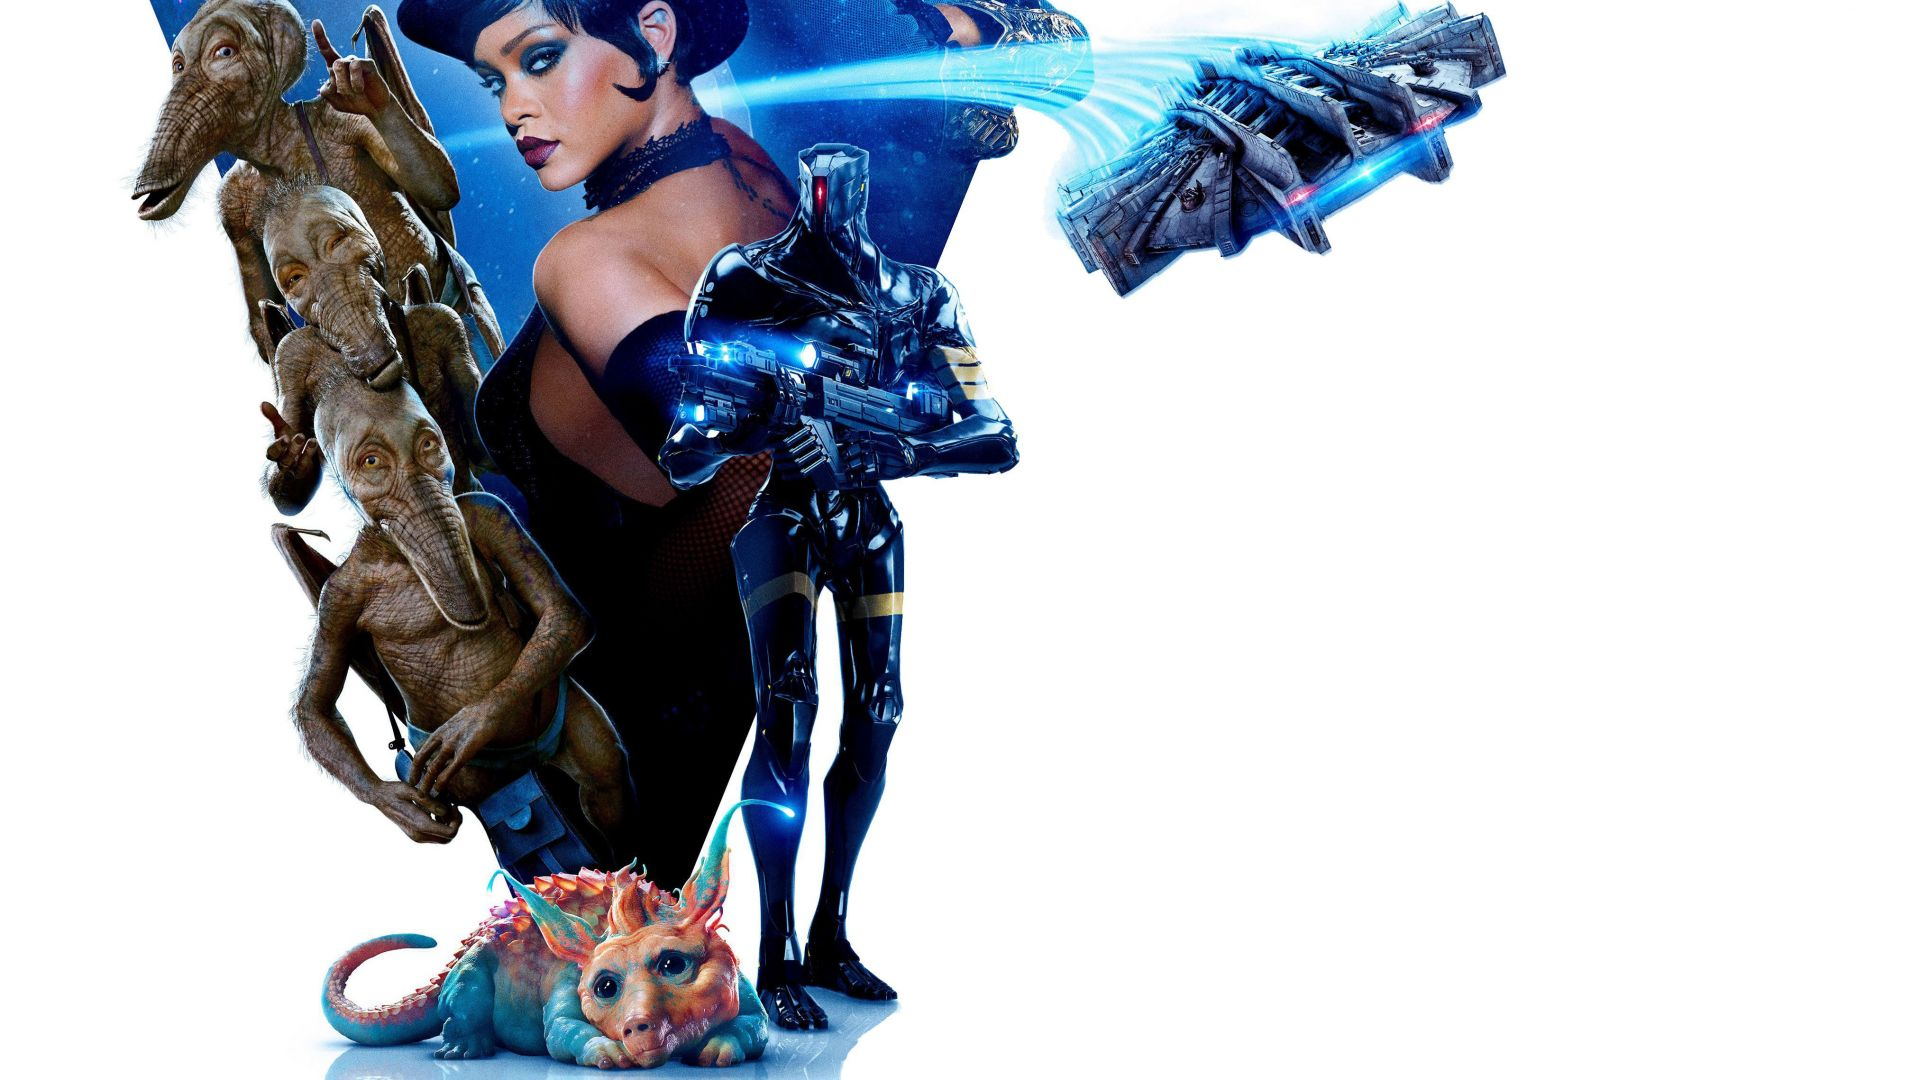 Valerian and the City of a Thousand Planets, Rihanna, 4k (horizontal)